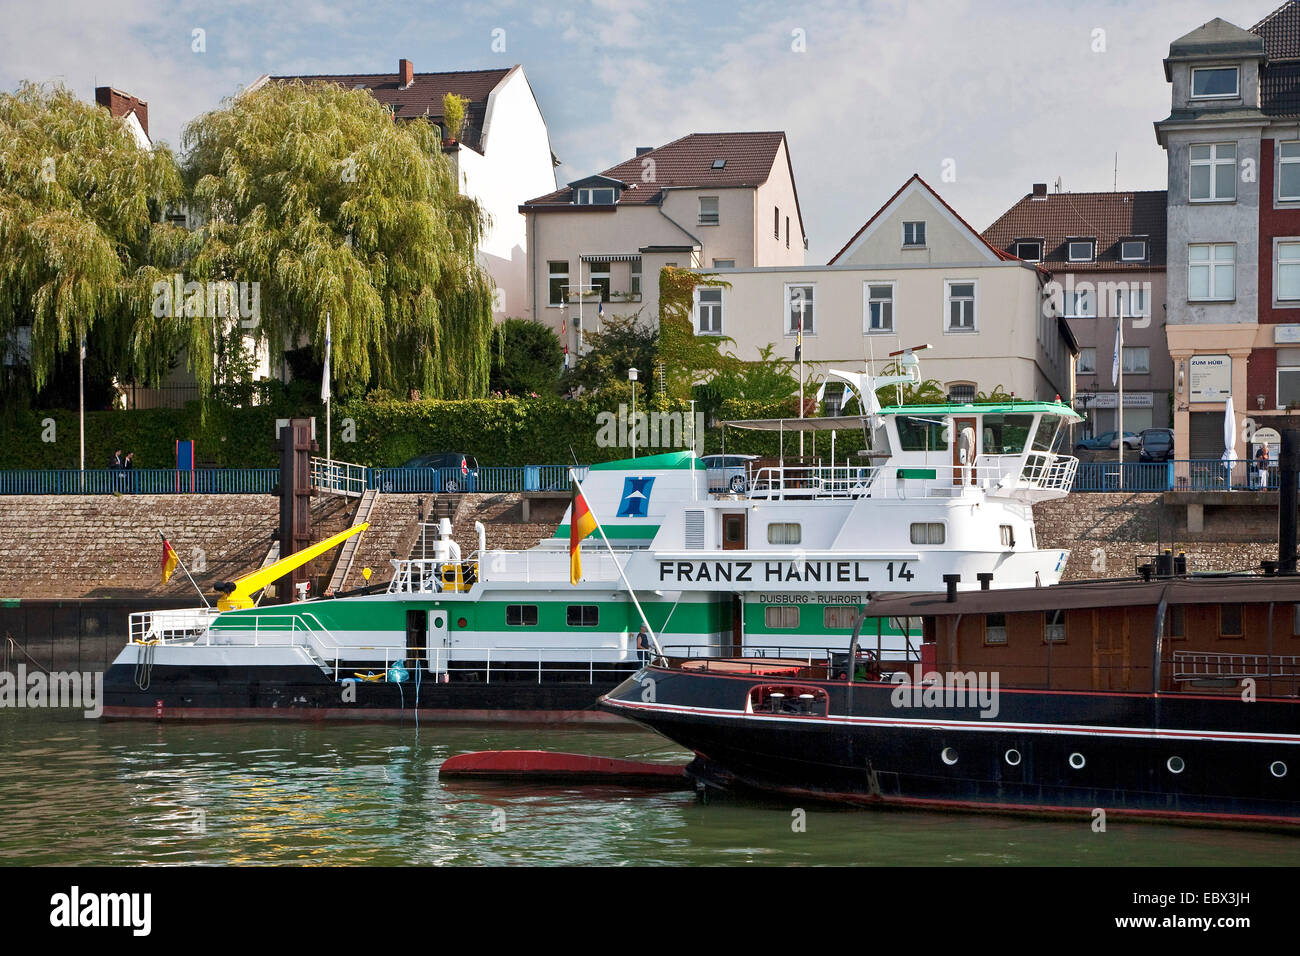 the ships Oscar Huber and Franz Haniel in the district Ruhrort, Germany, North Rhine-Westphalia, Ruhr Area, Duisburg Stock Photo